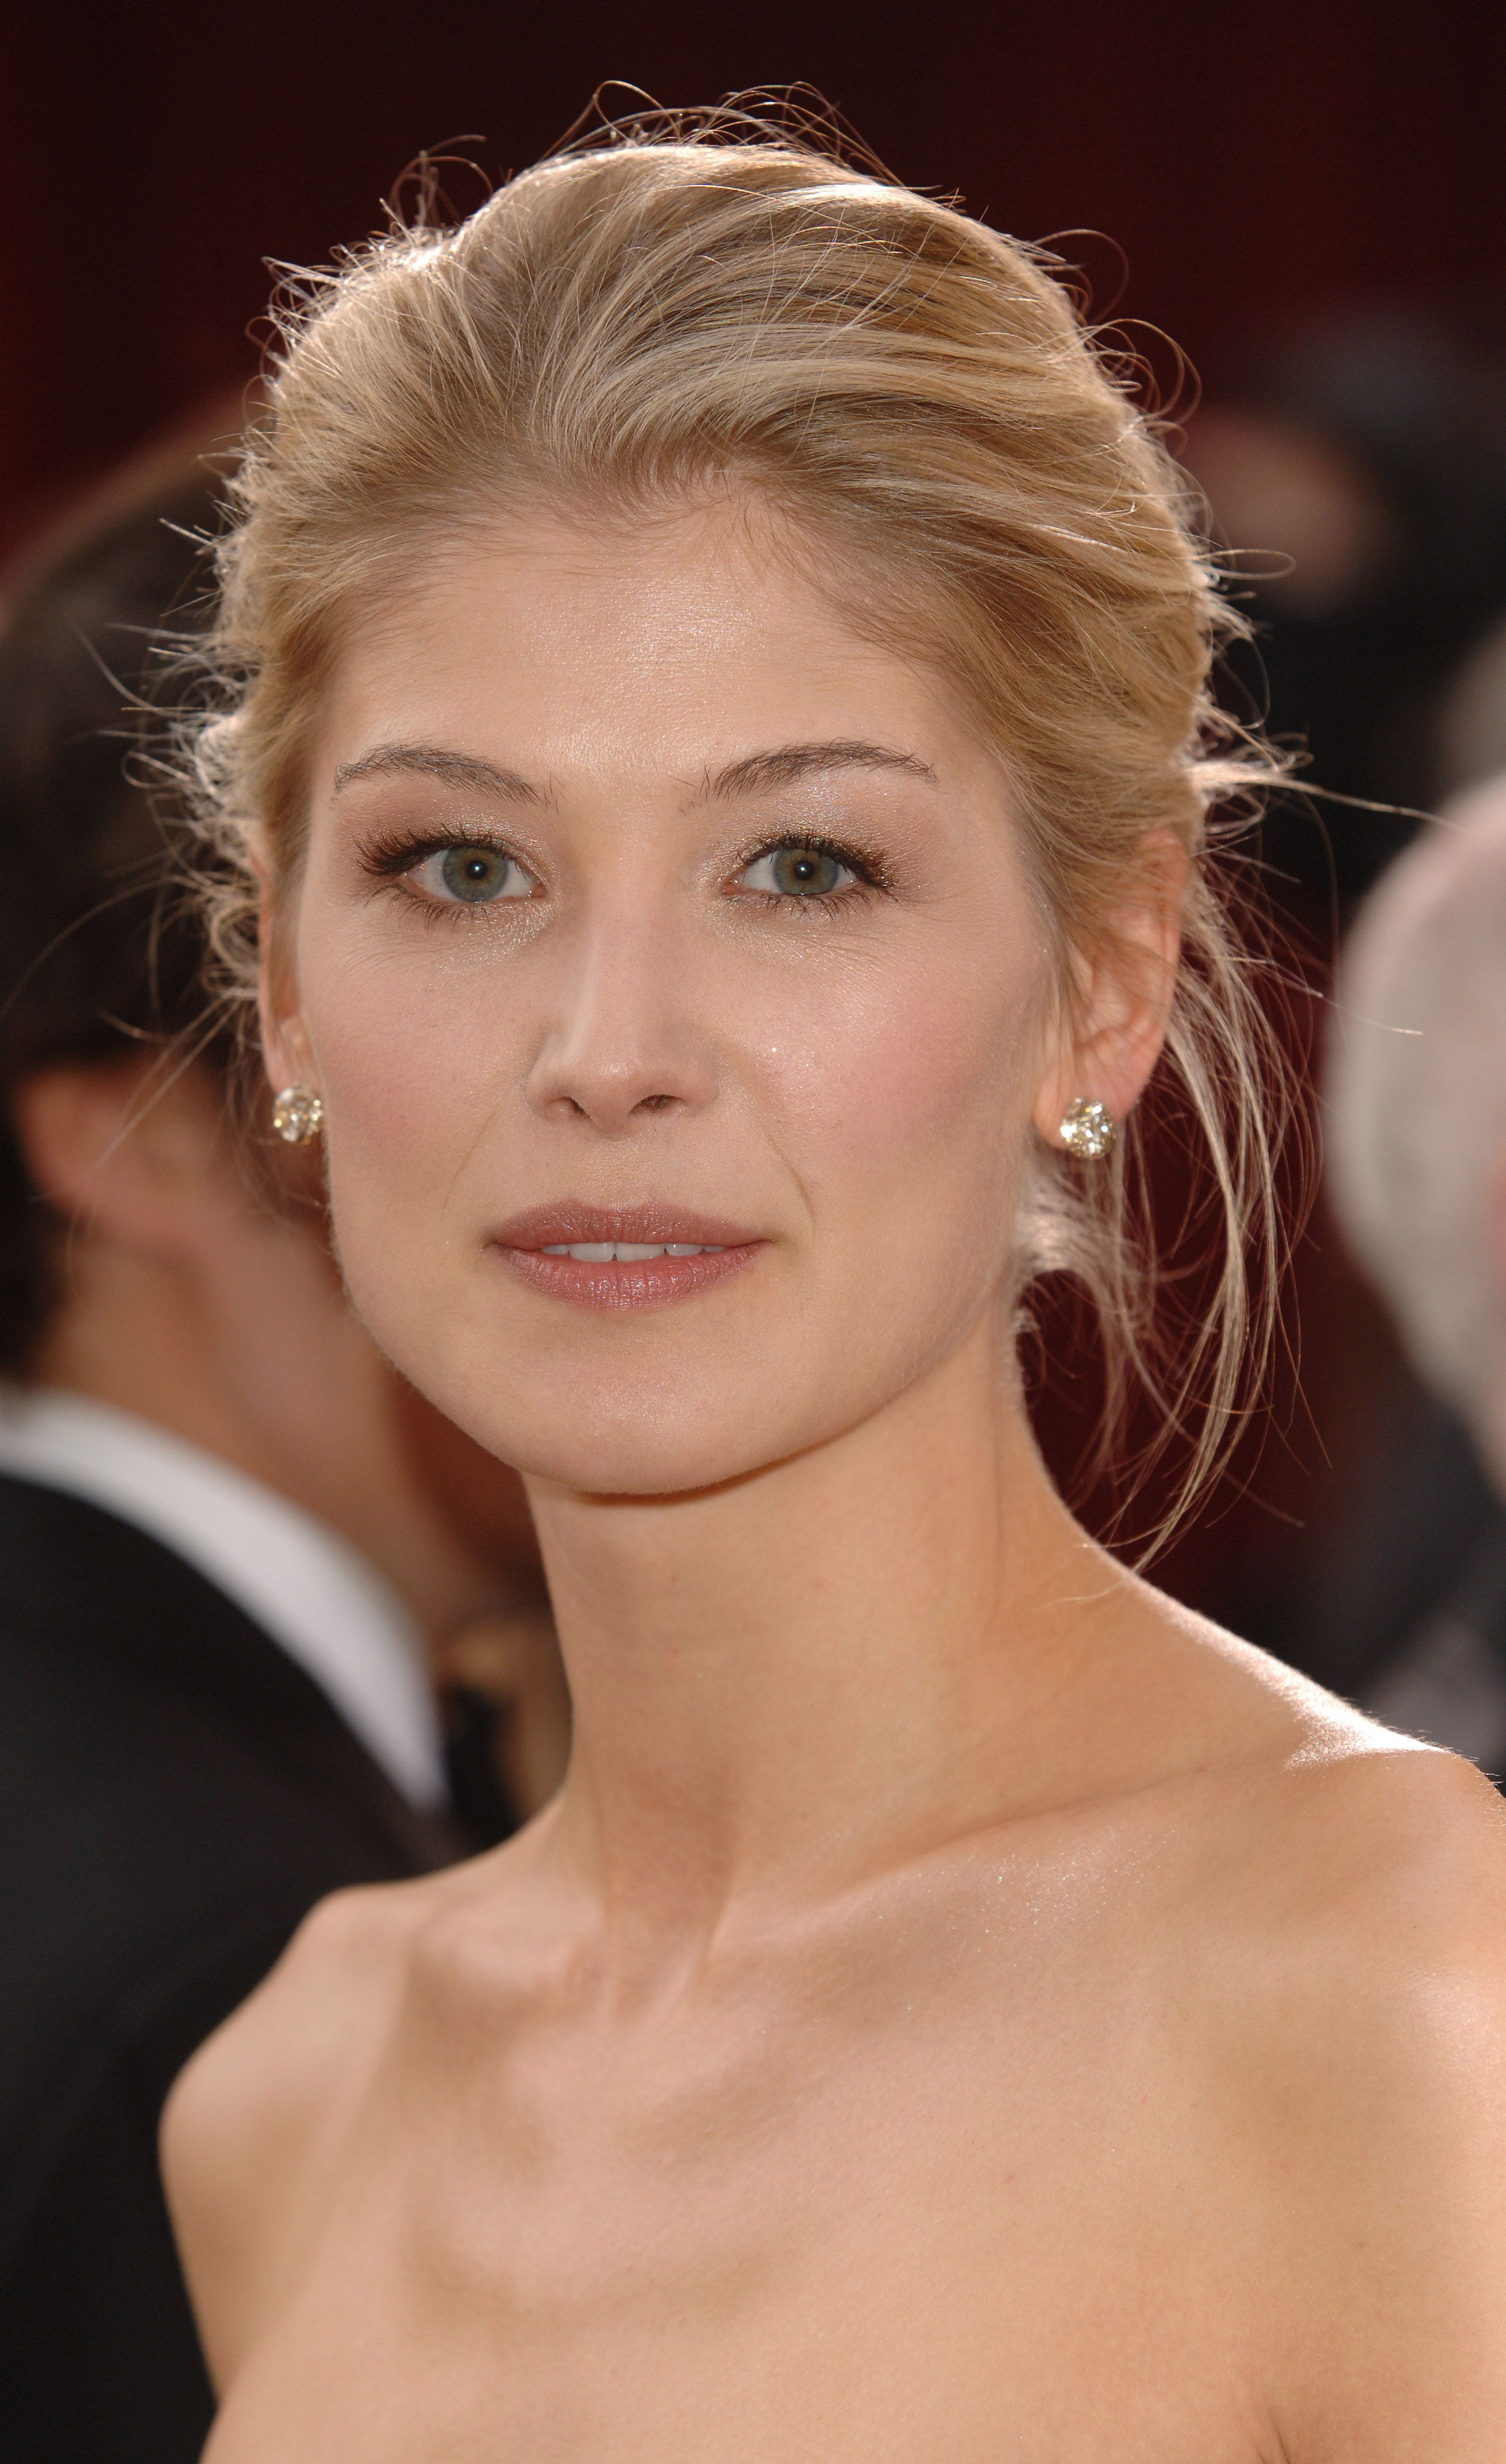 Rosamund Pike I know her from Pride & Prejudice and Jack ...Rosamund Pike 2014